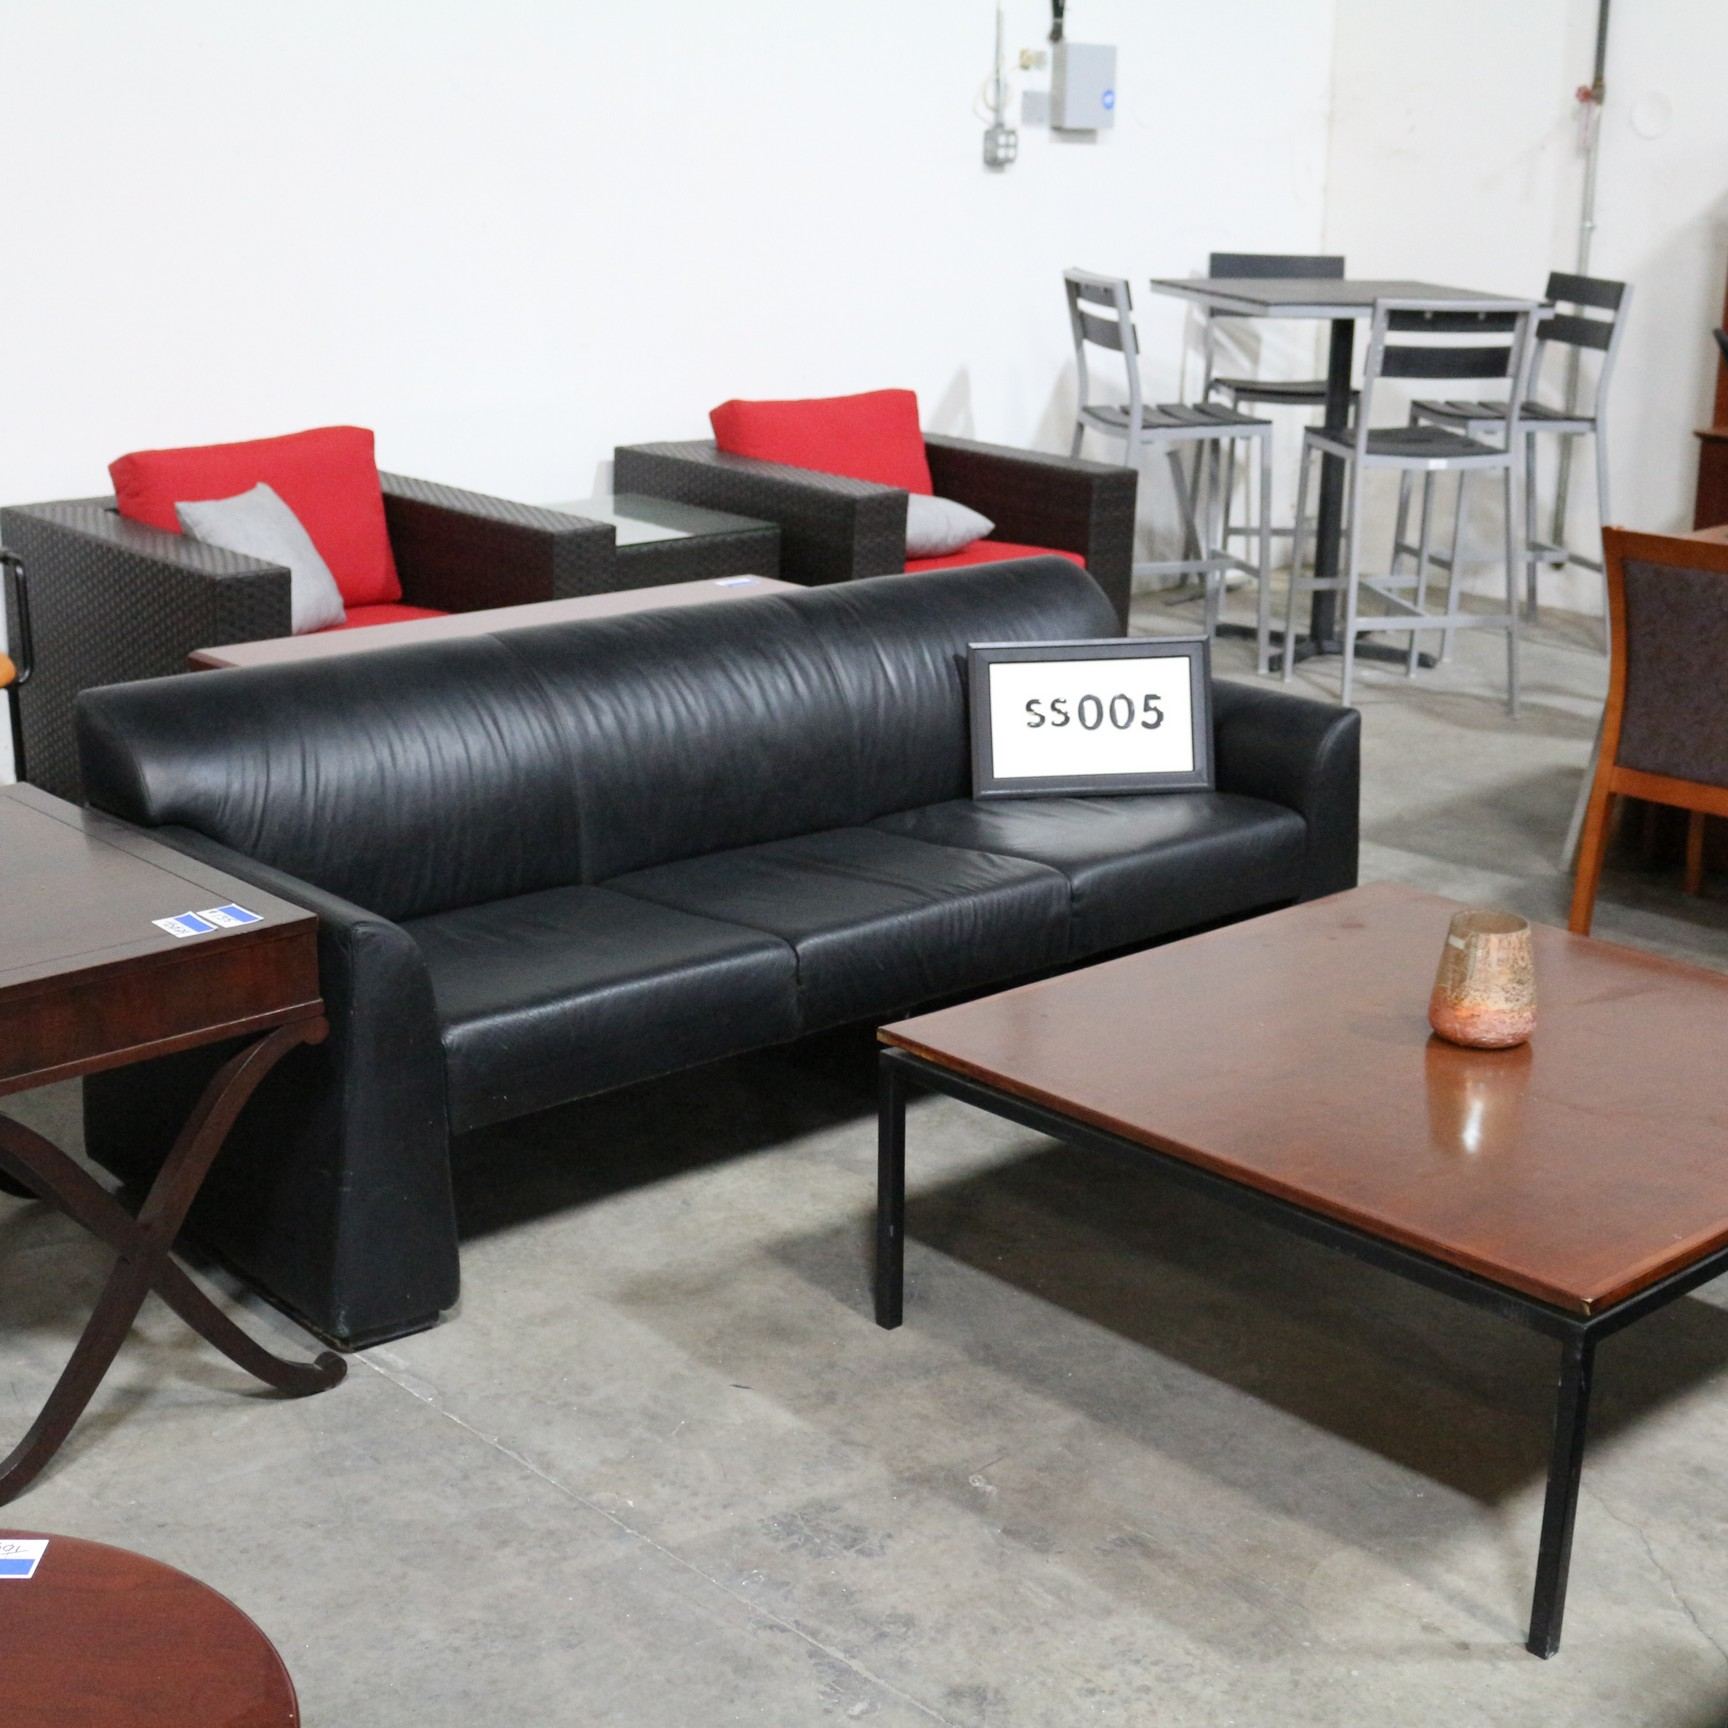 Monarch Office Furniture SS005 Used Haworth Black Leather Sofa for sale